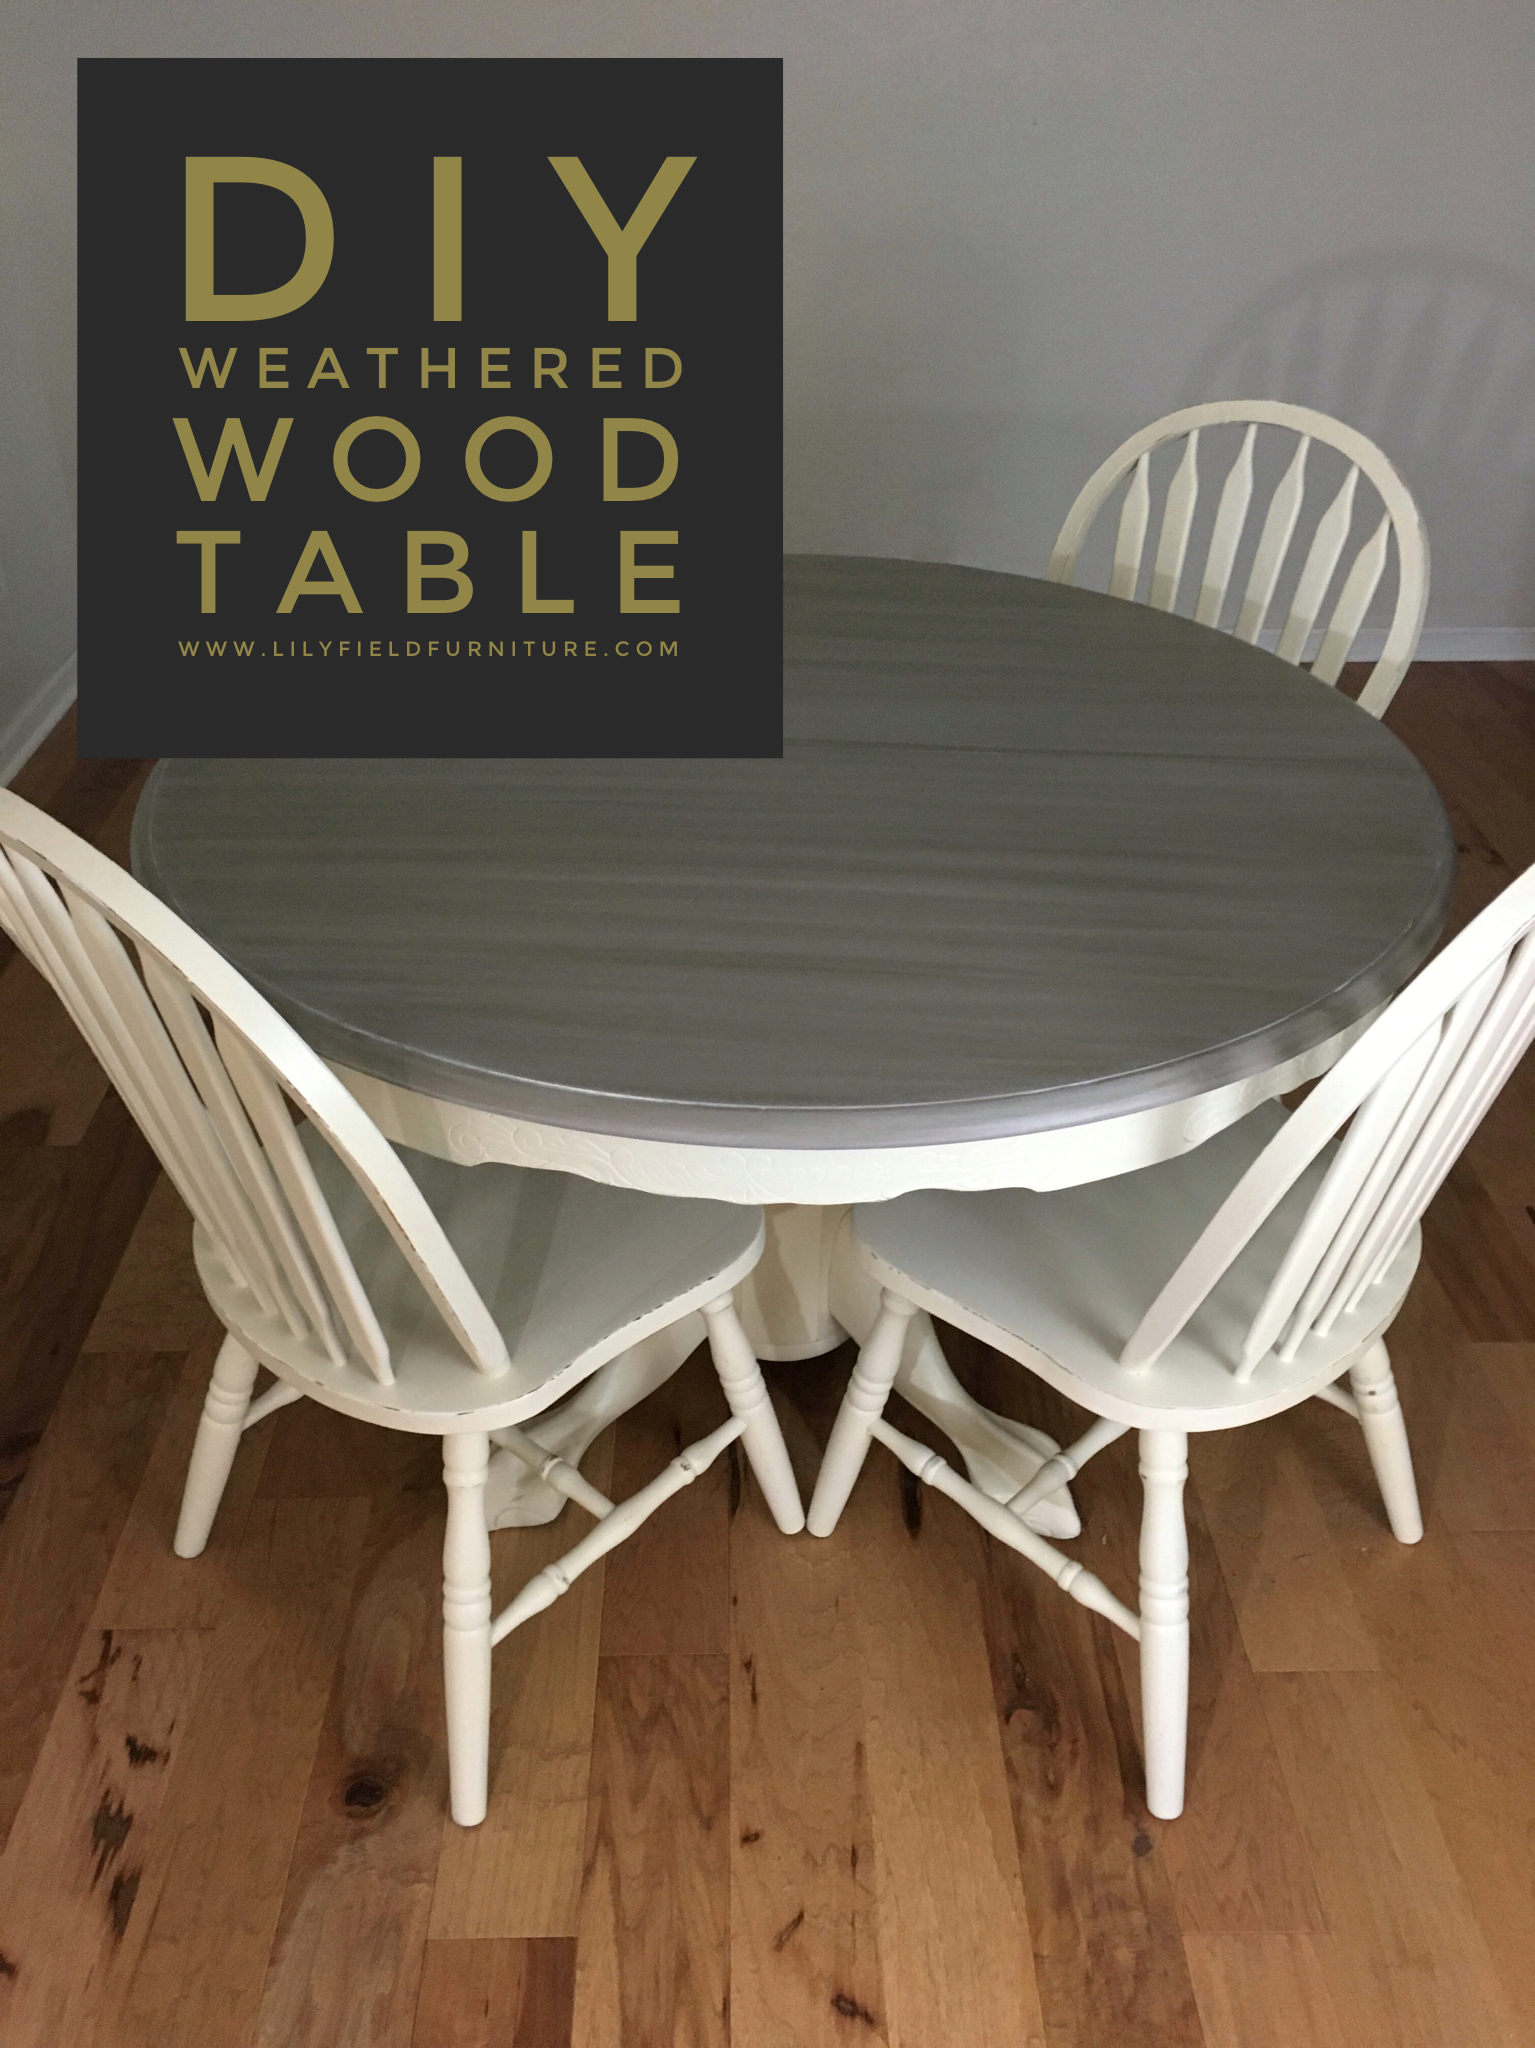 Diy Weathered Wood Table With Images Painted Kitchen Tables Distressed Wood Table White Wood Table